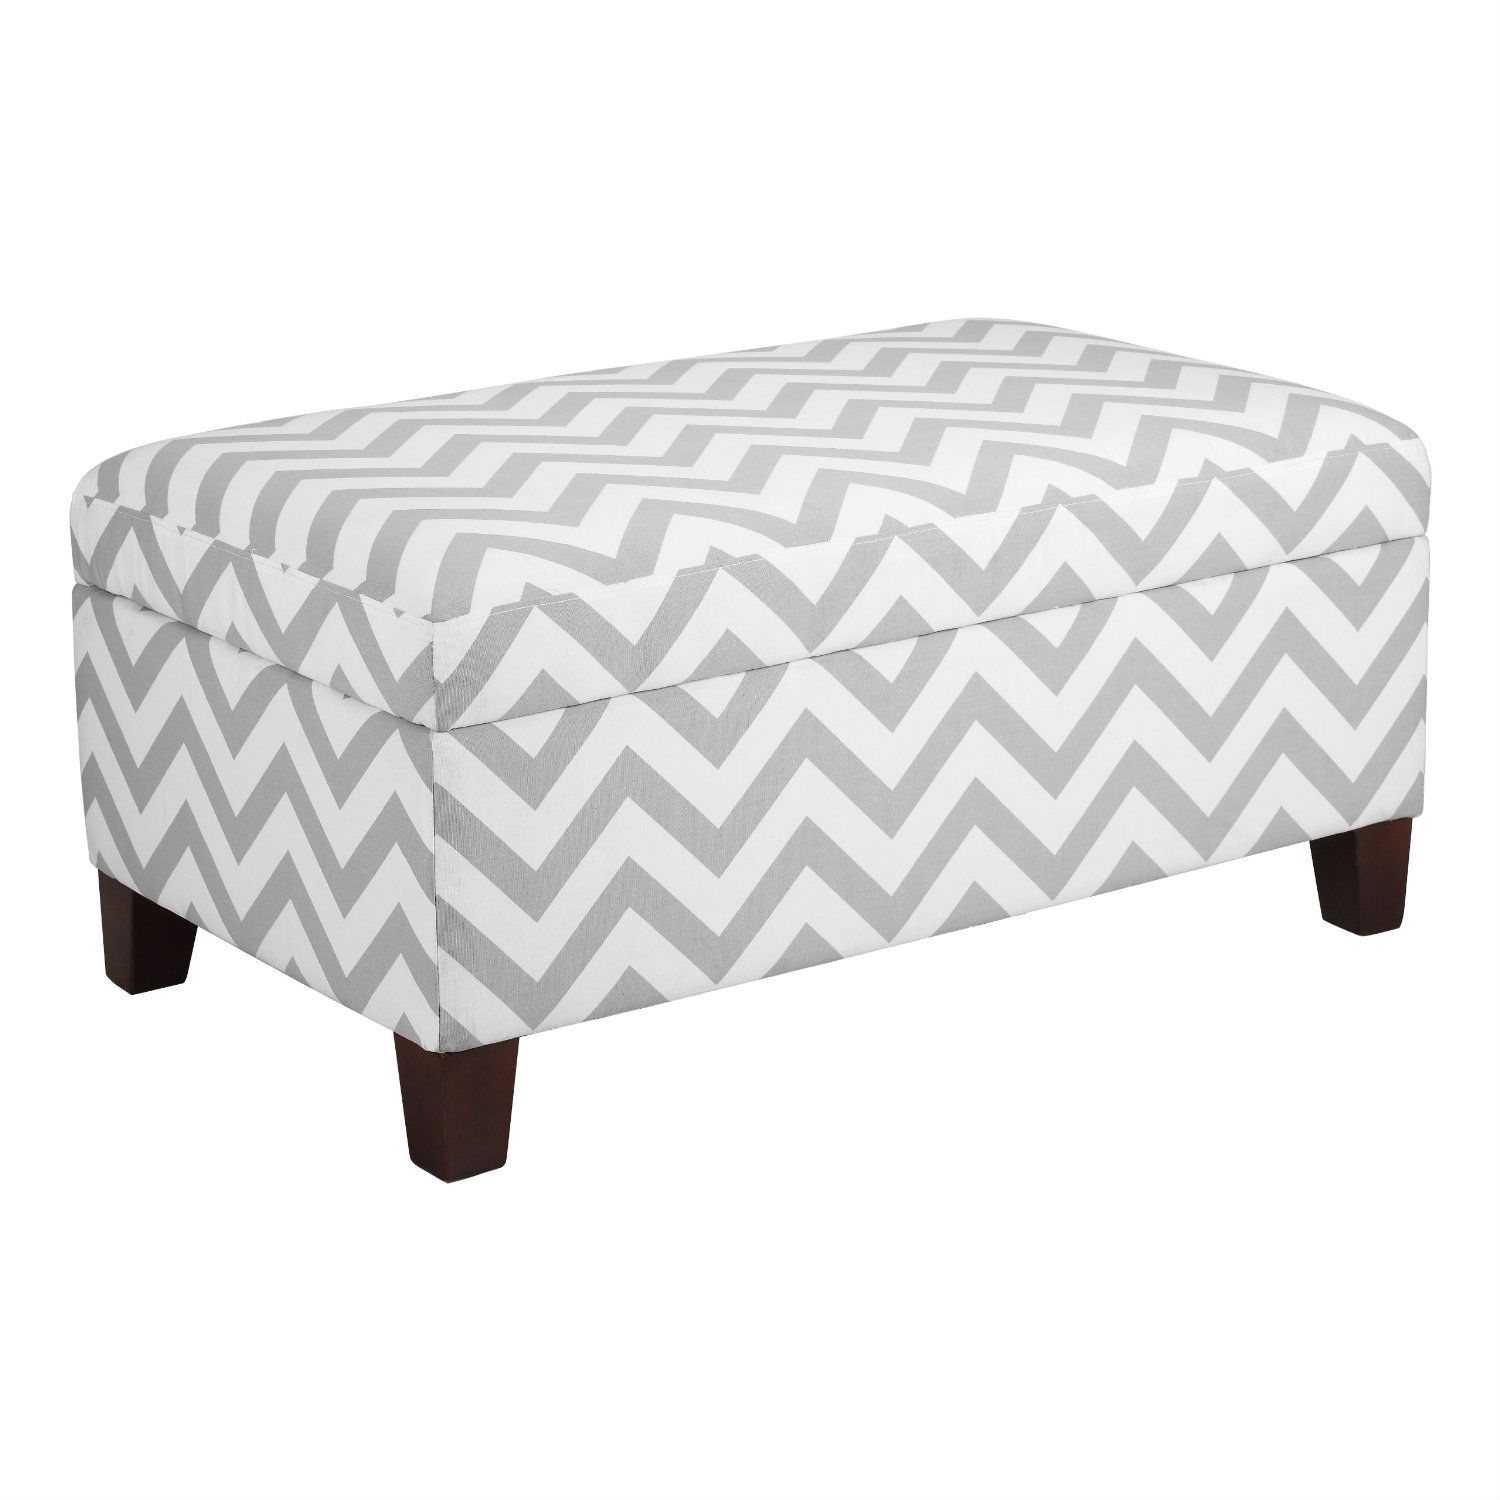 Grey & White Chevron Stripe Padded Storage Ottoman Bench ...